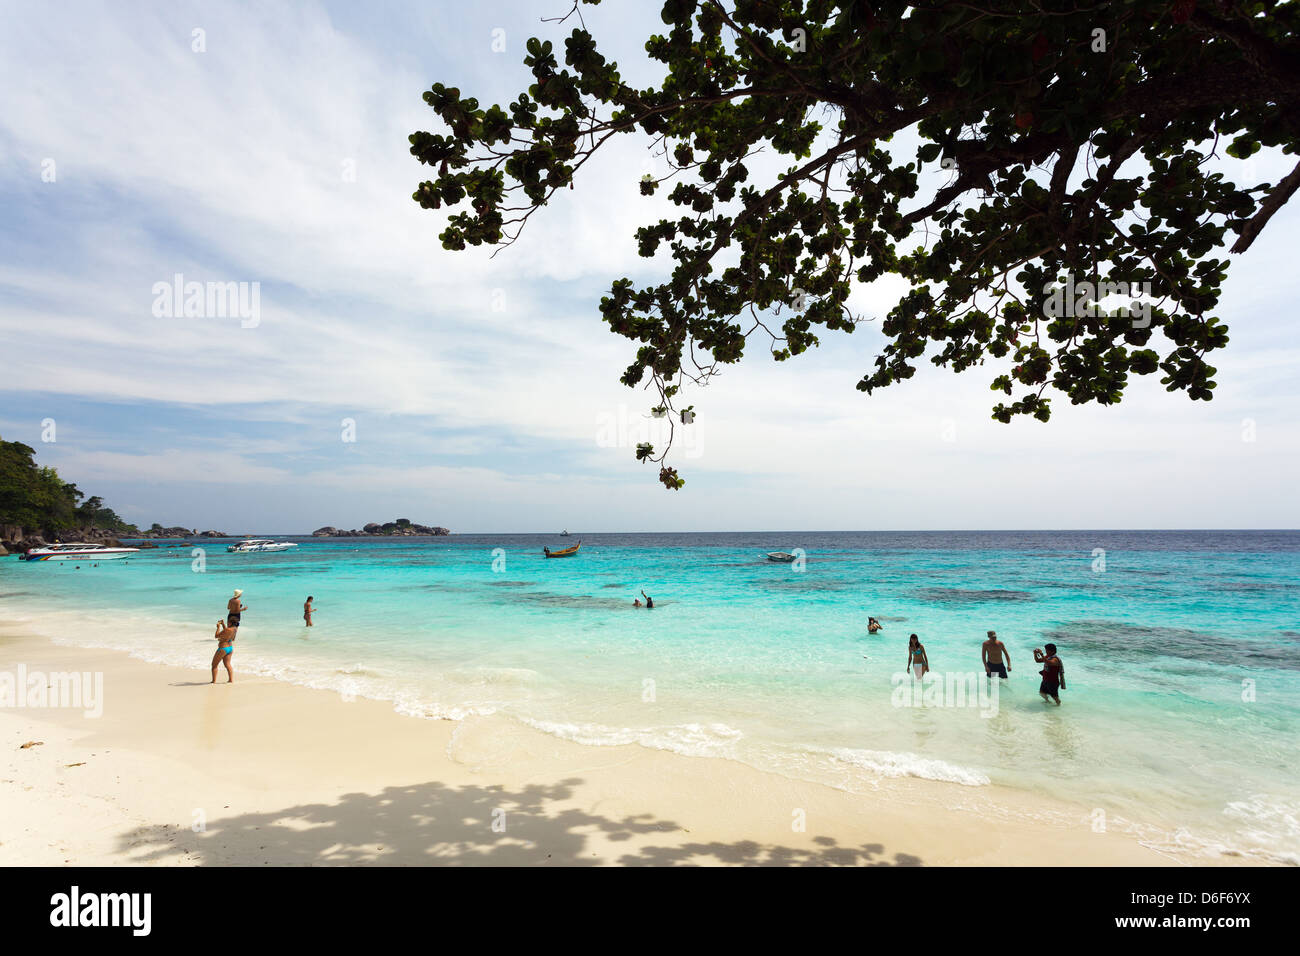 Russians tourists bathing on the Mu Ko Similan island beach, Thailand - Stock Image